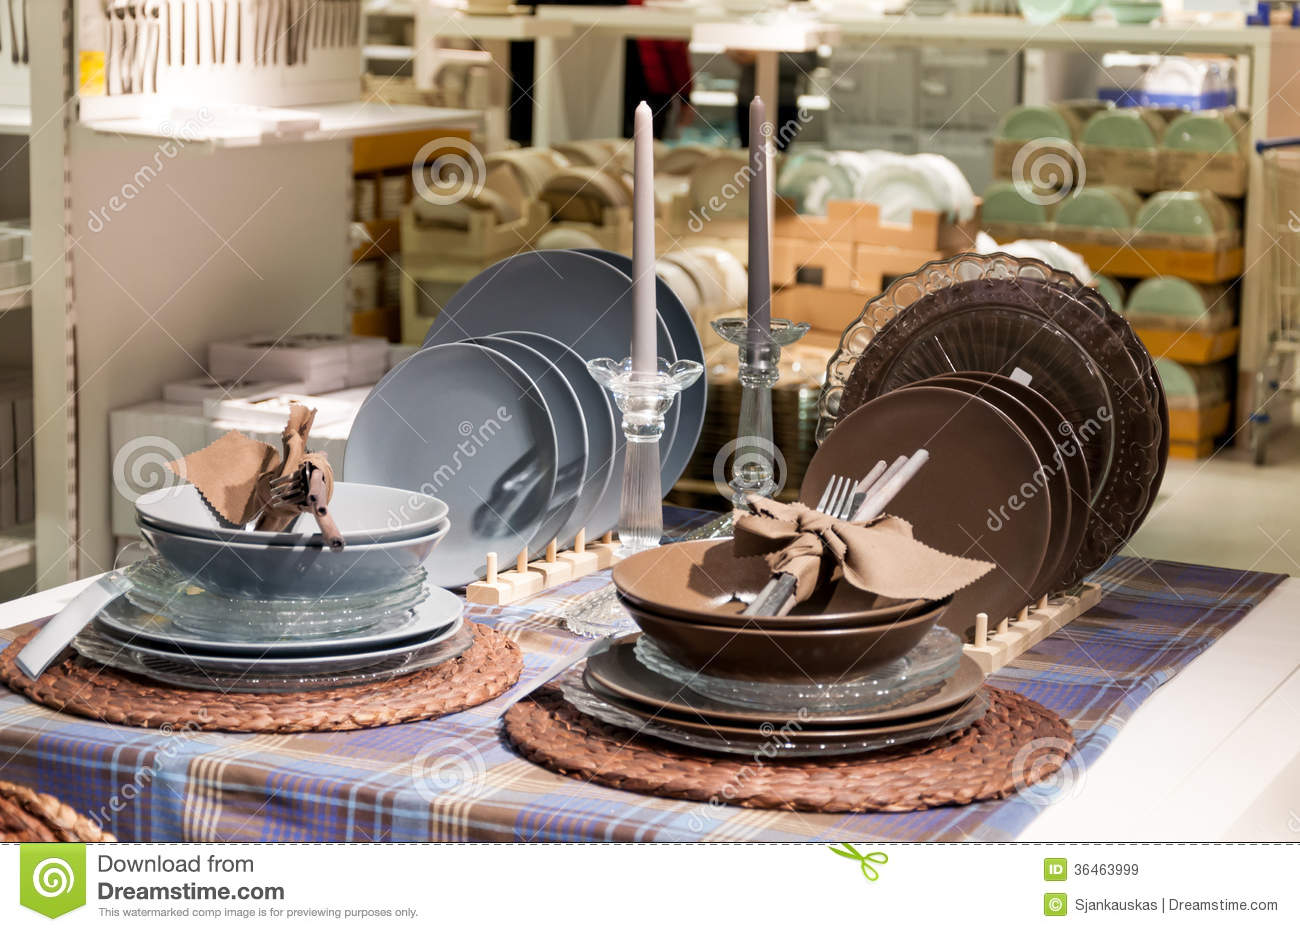 Dishware And Home Decor Store